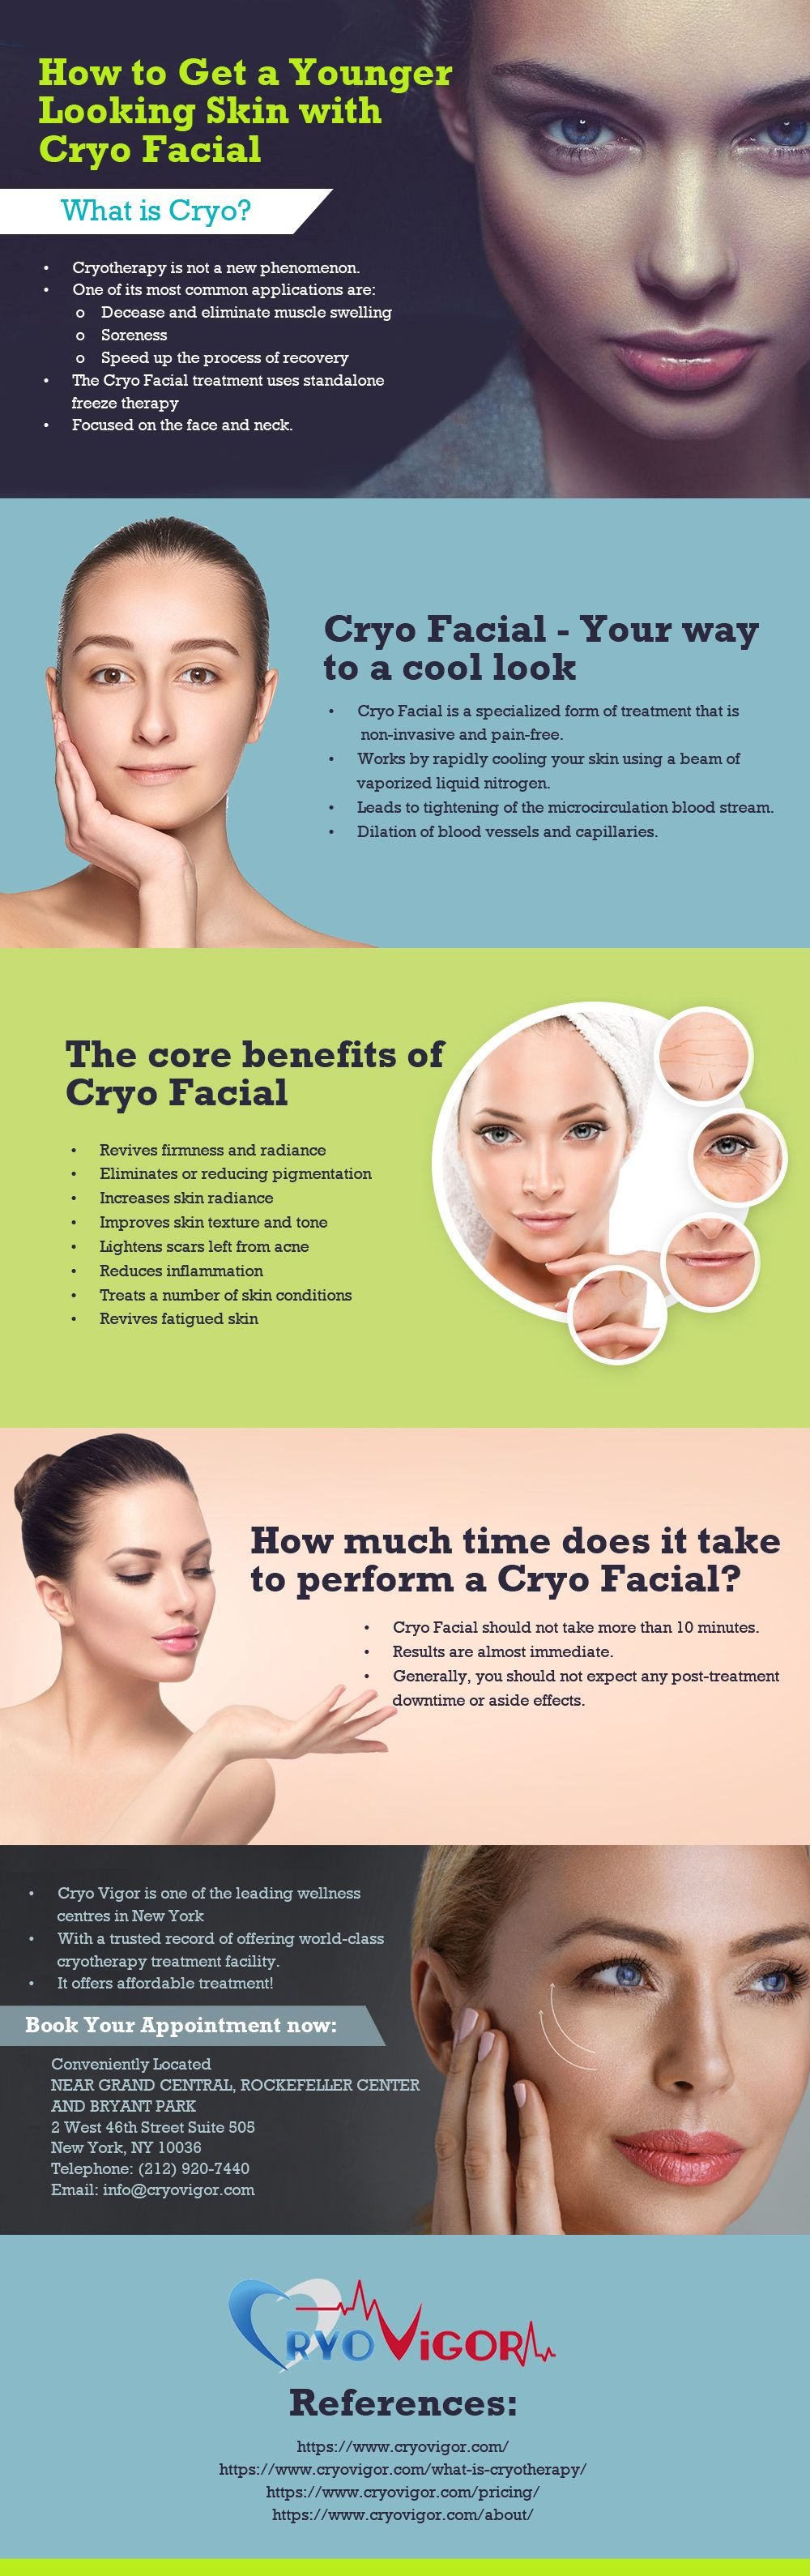 How To Get A Younger Looking Skin With Cryo Facial Cryo Facial Cryotherapy Cryotherapy Benefits